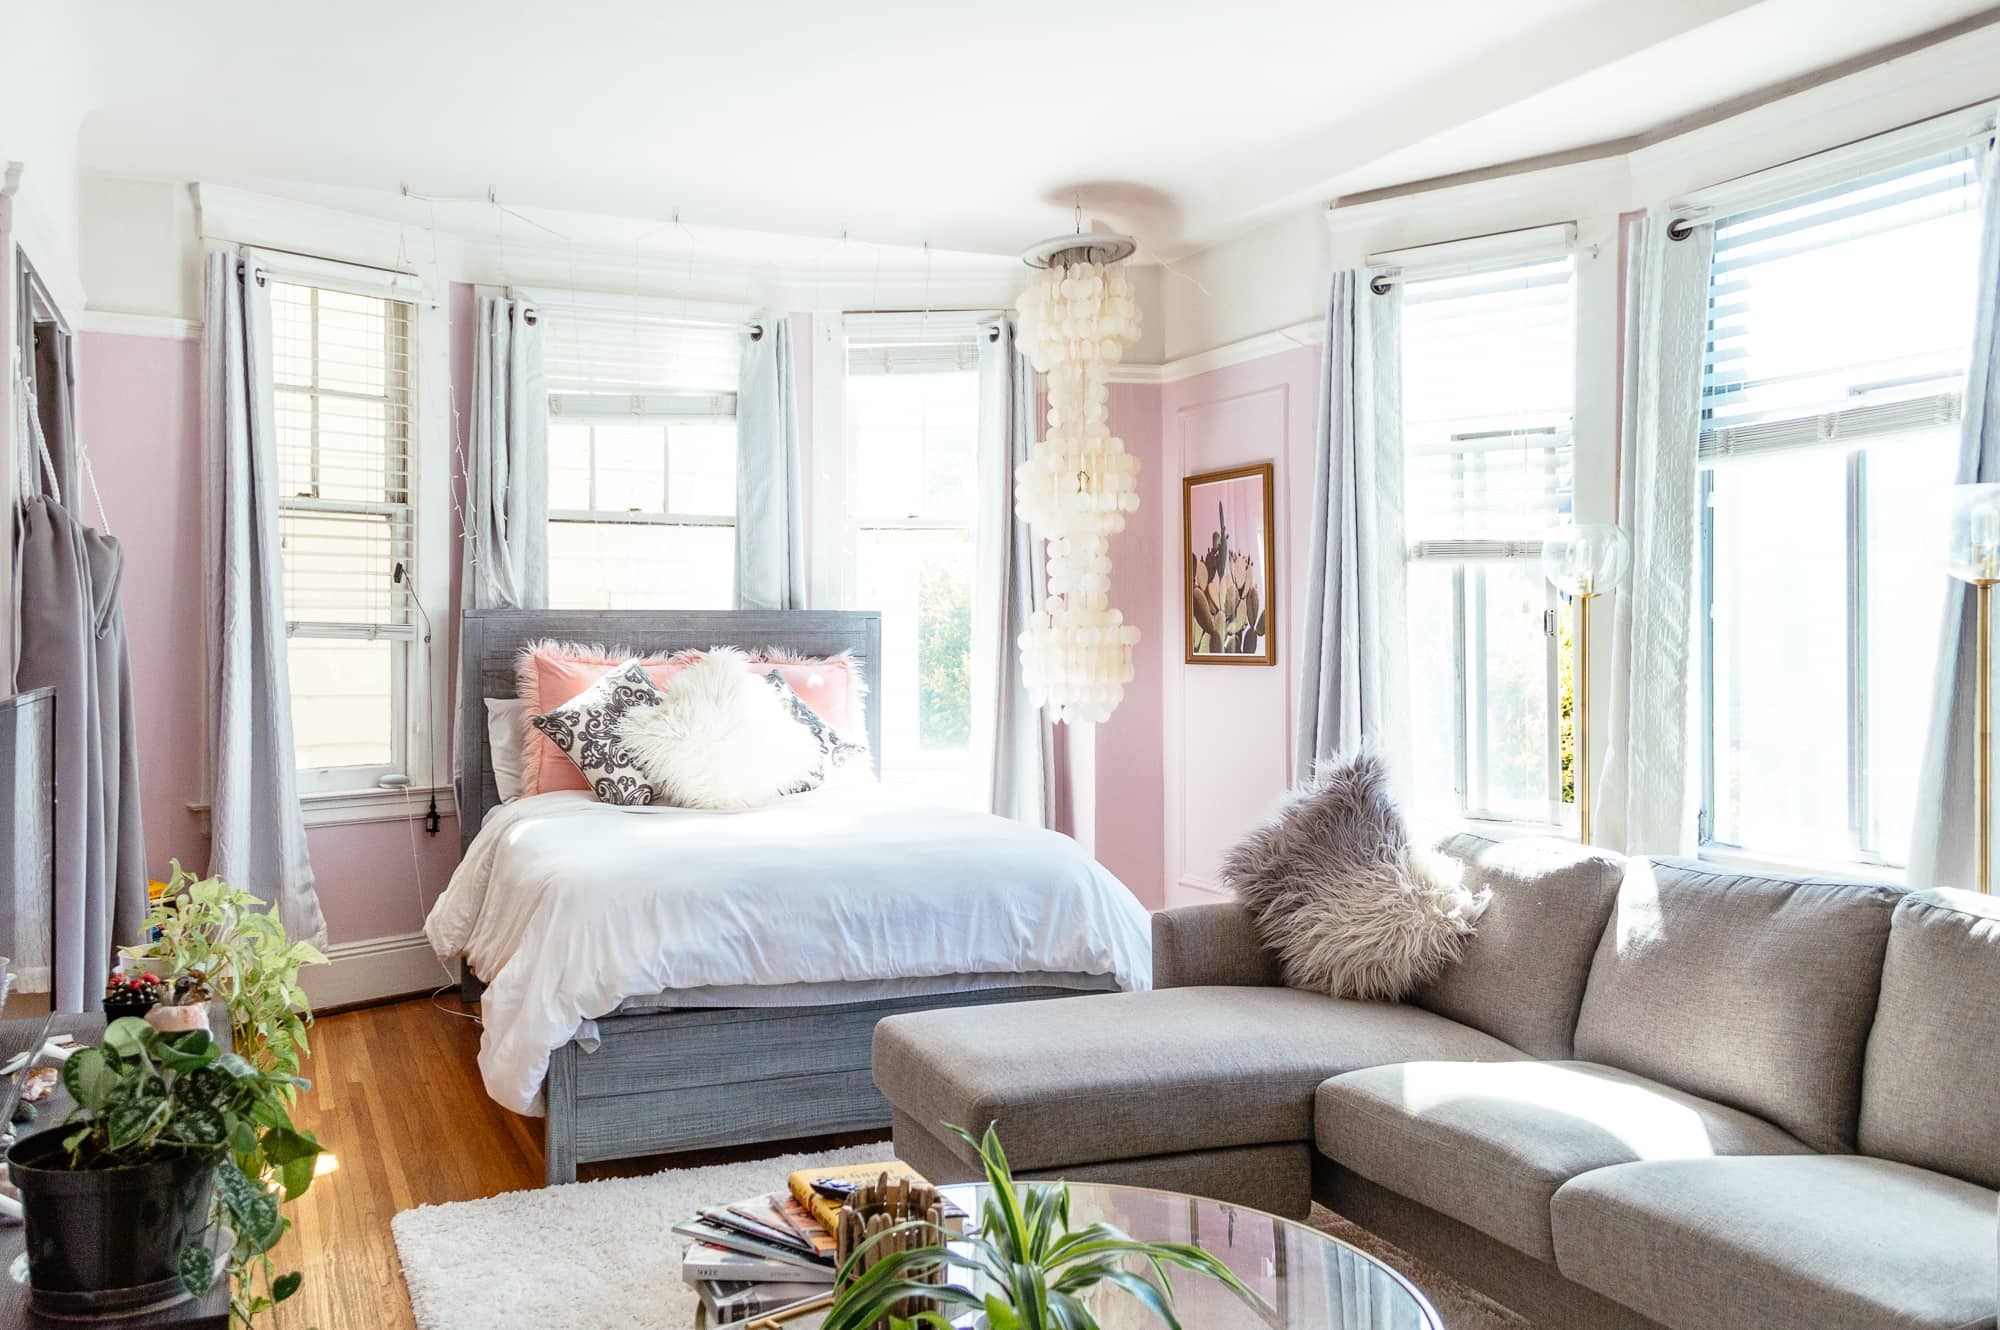 Small Space Living San Francisco Studio Apartment ...